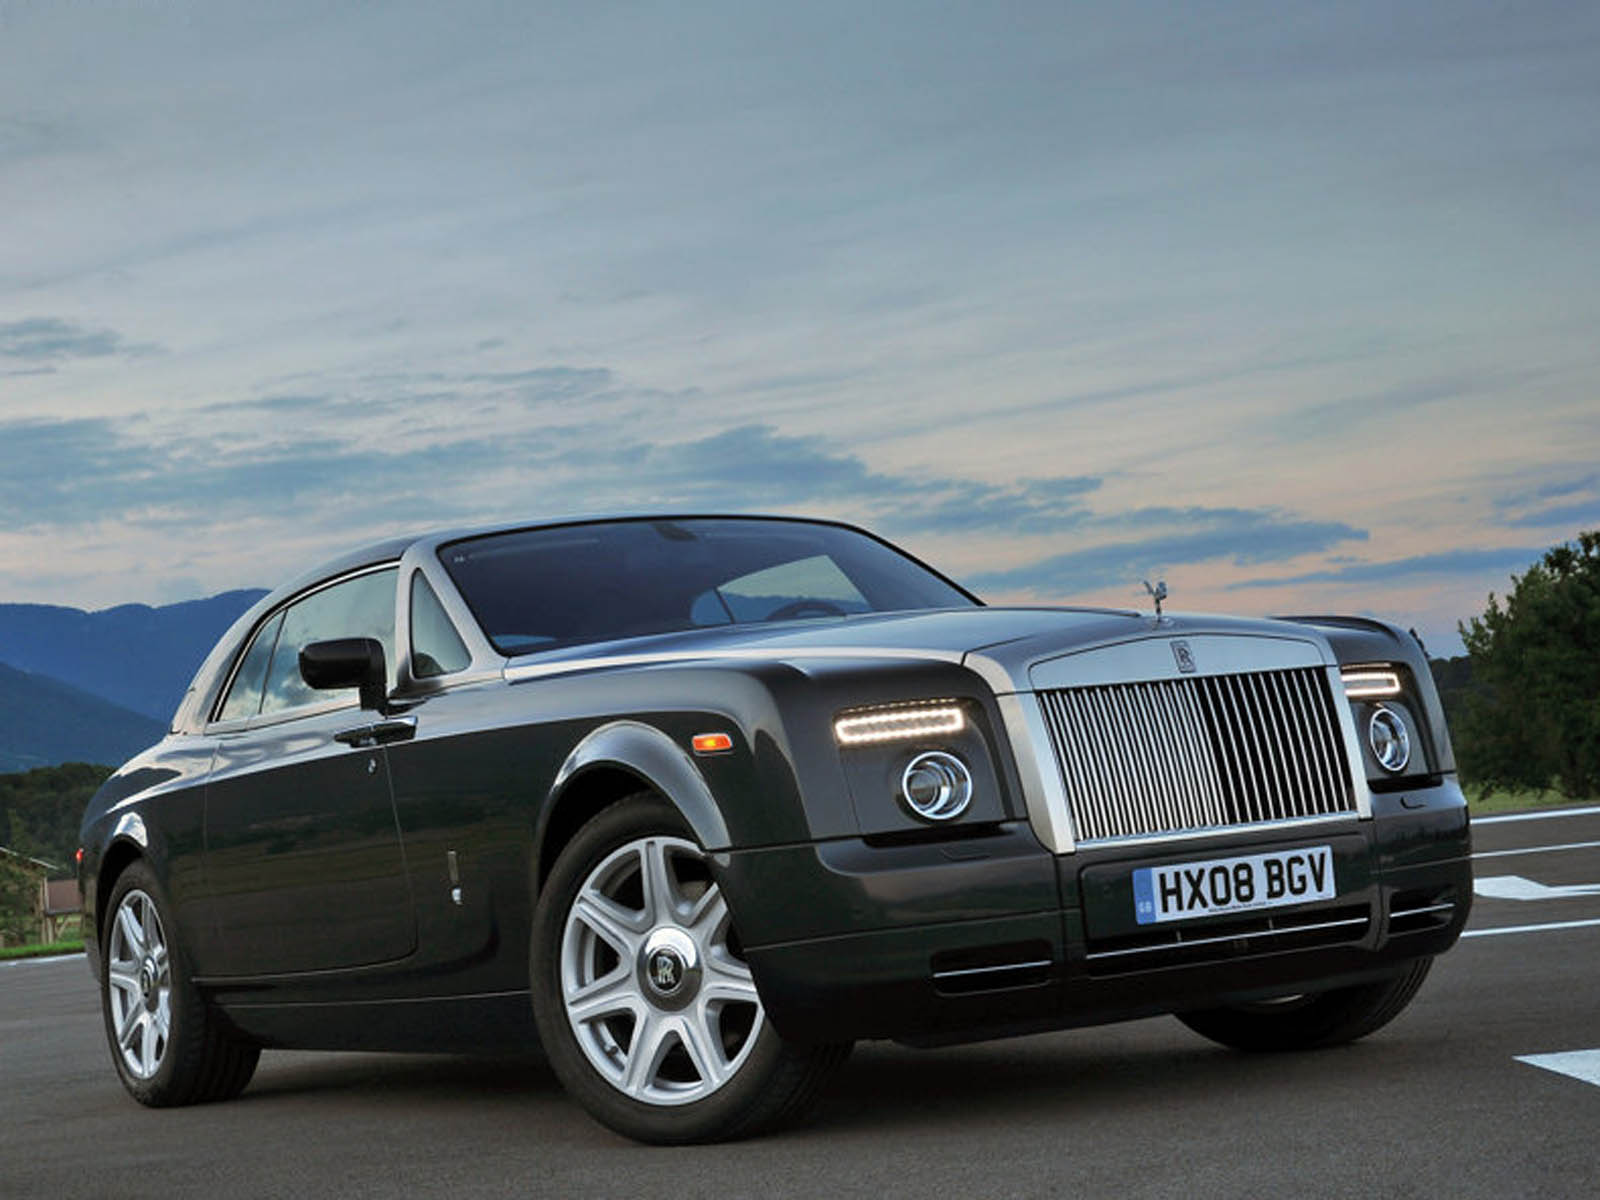 Rolls Royce Ghost 20 Car Background: Wallpapers: Rolls Royce Phantom Coupe Car Wallpapers